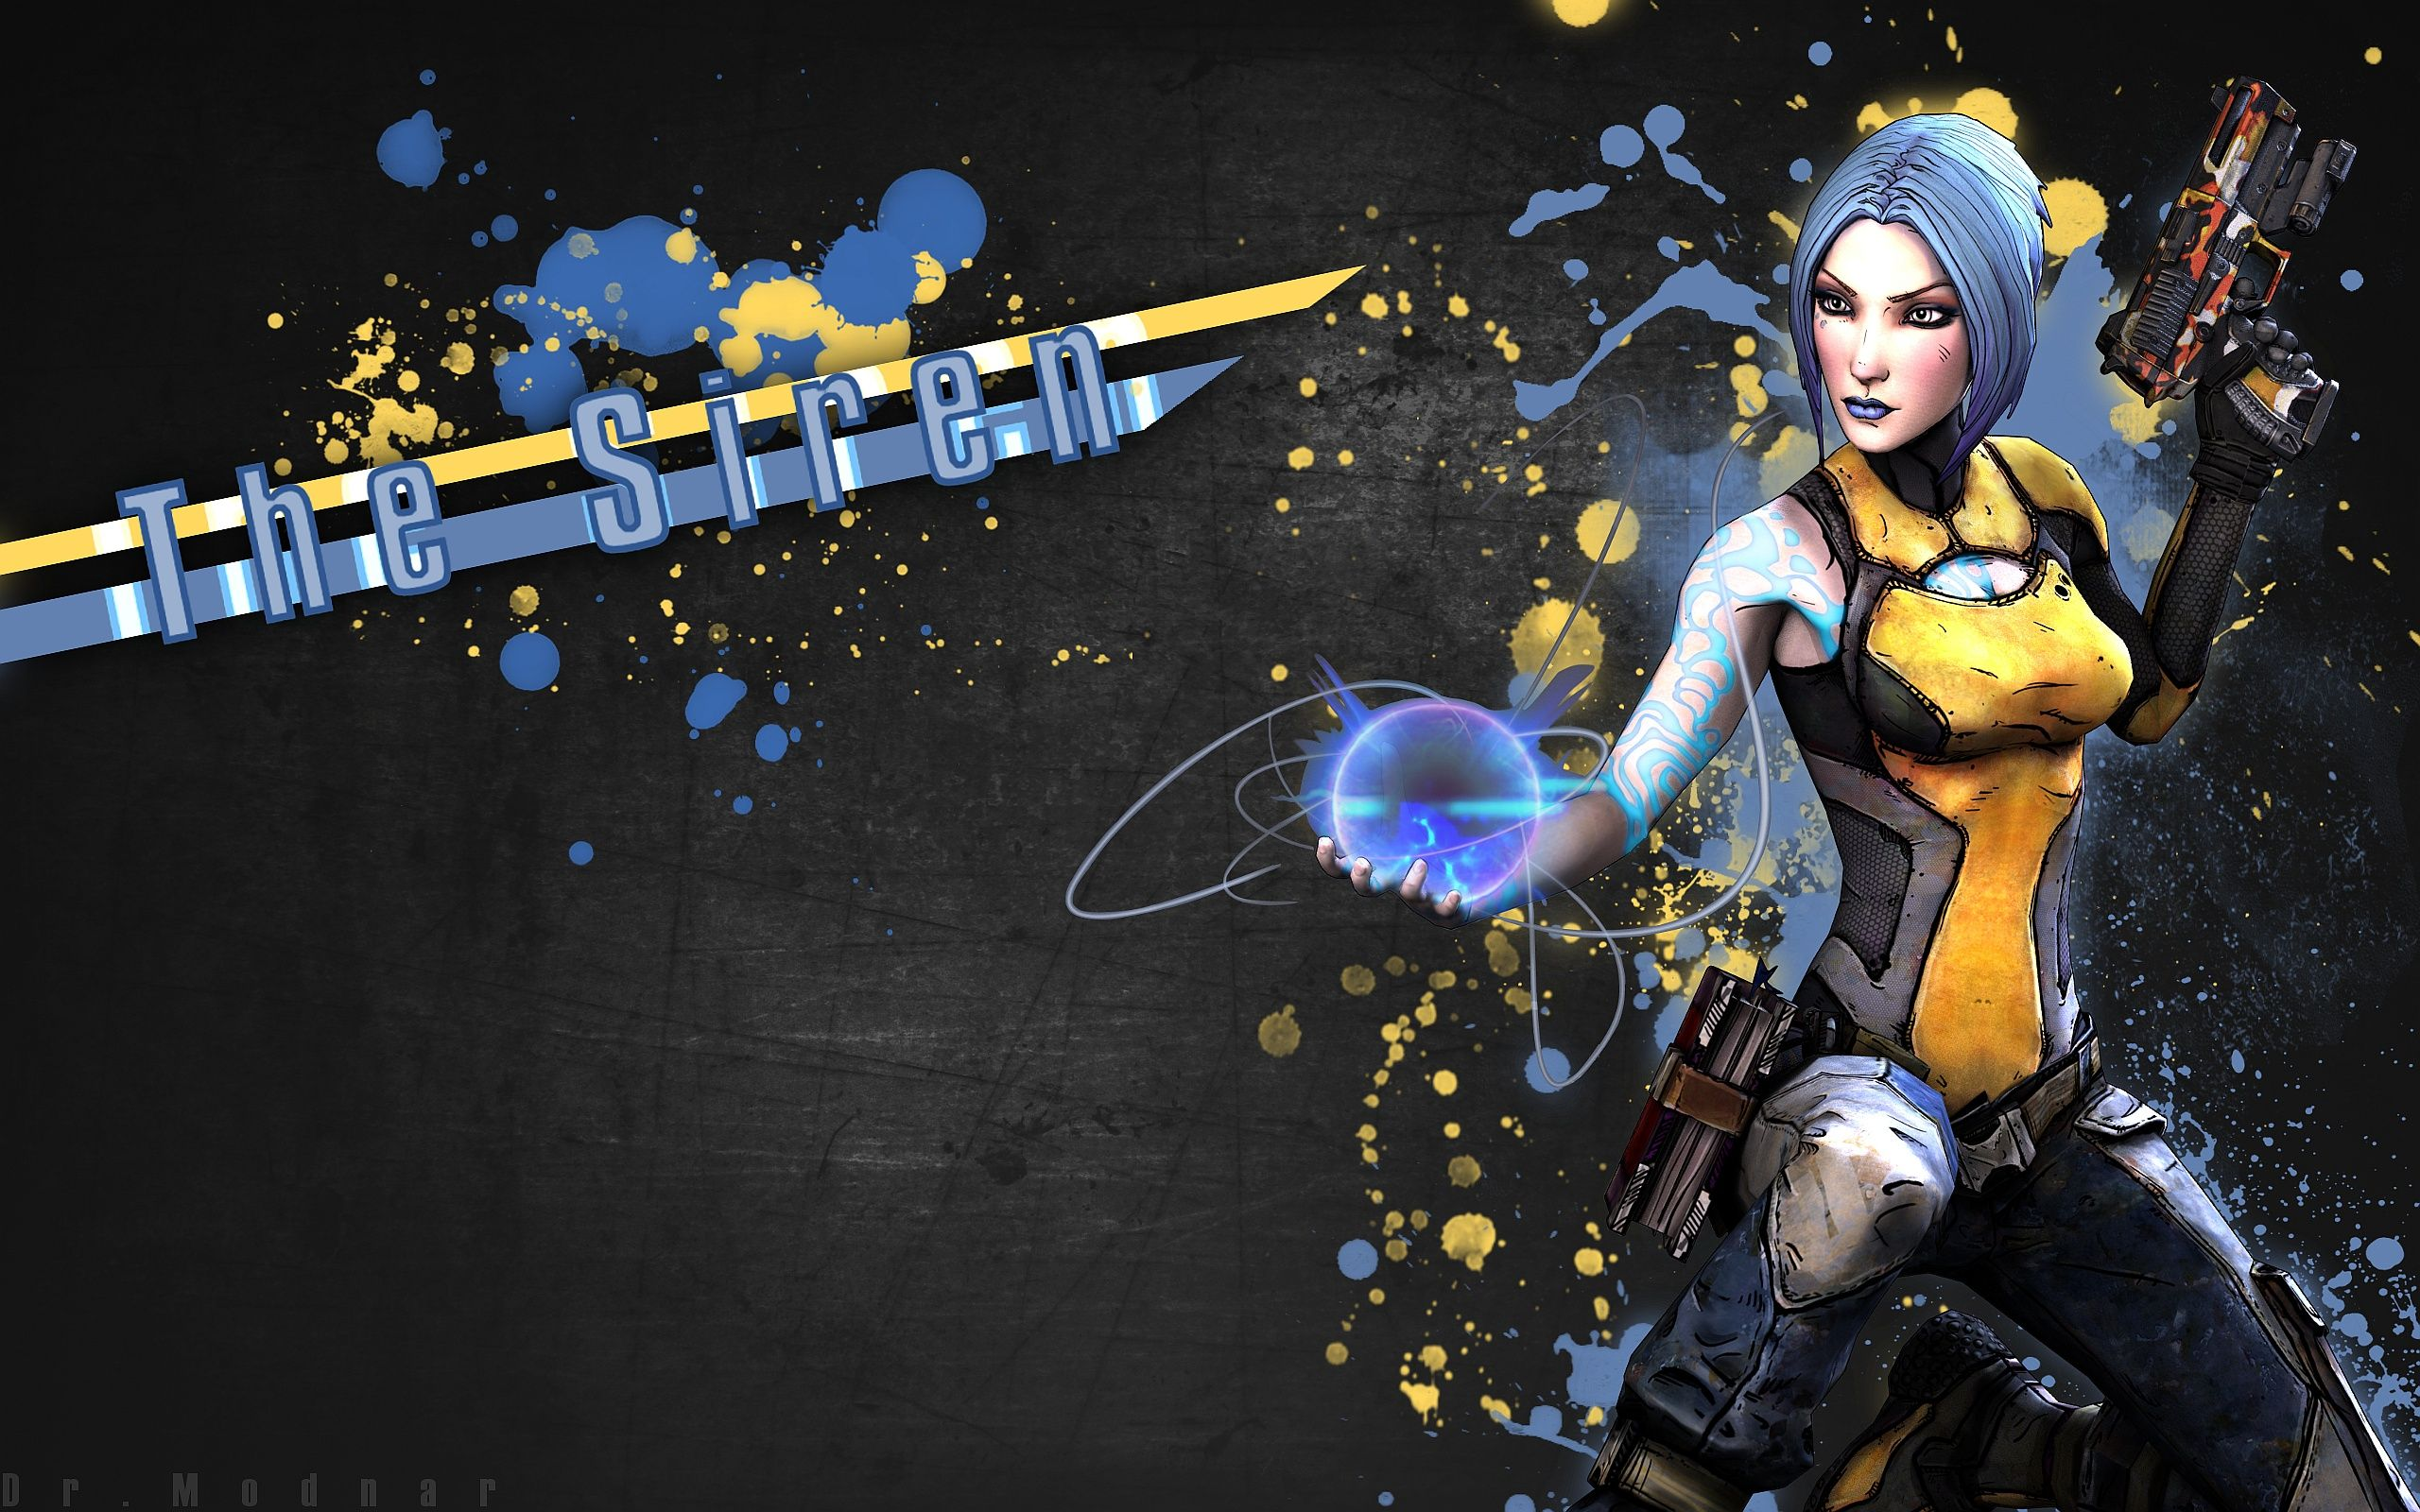 Maya (Borderlands 2) Wallpaper free download, Hd wallpaper